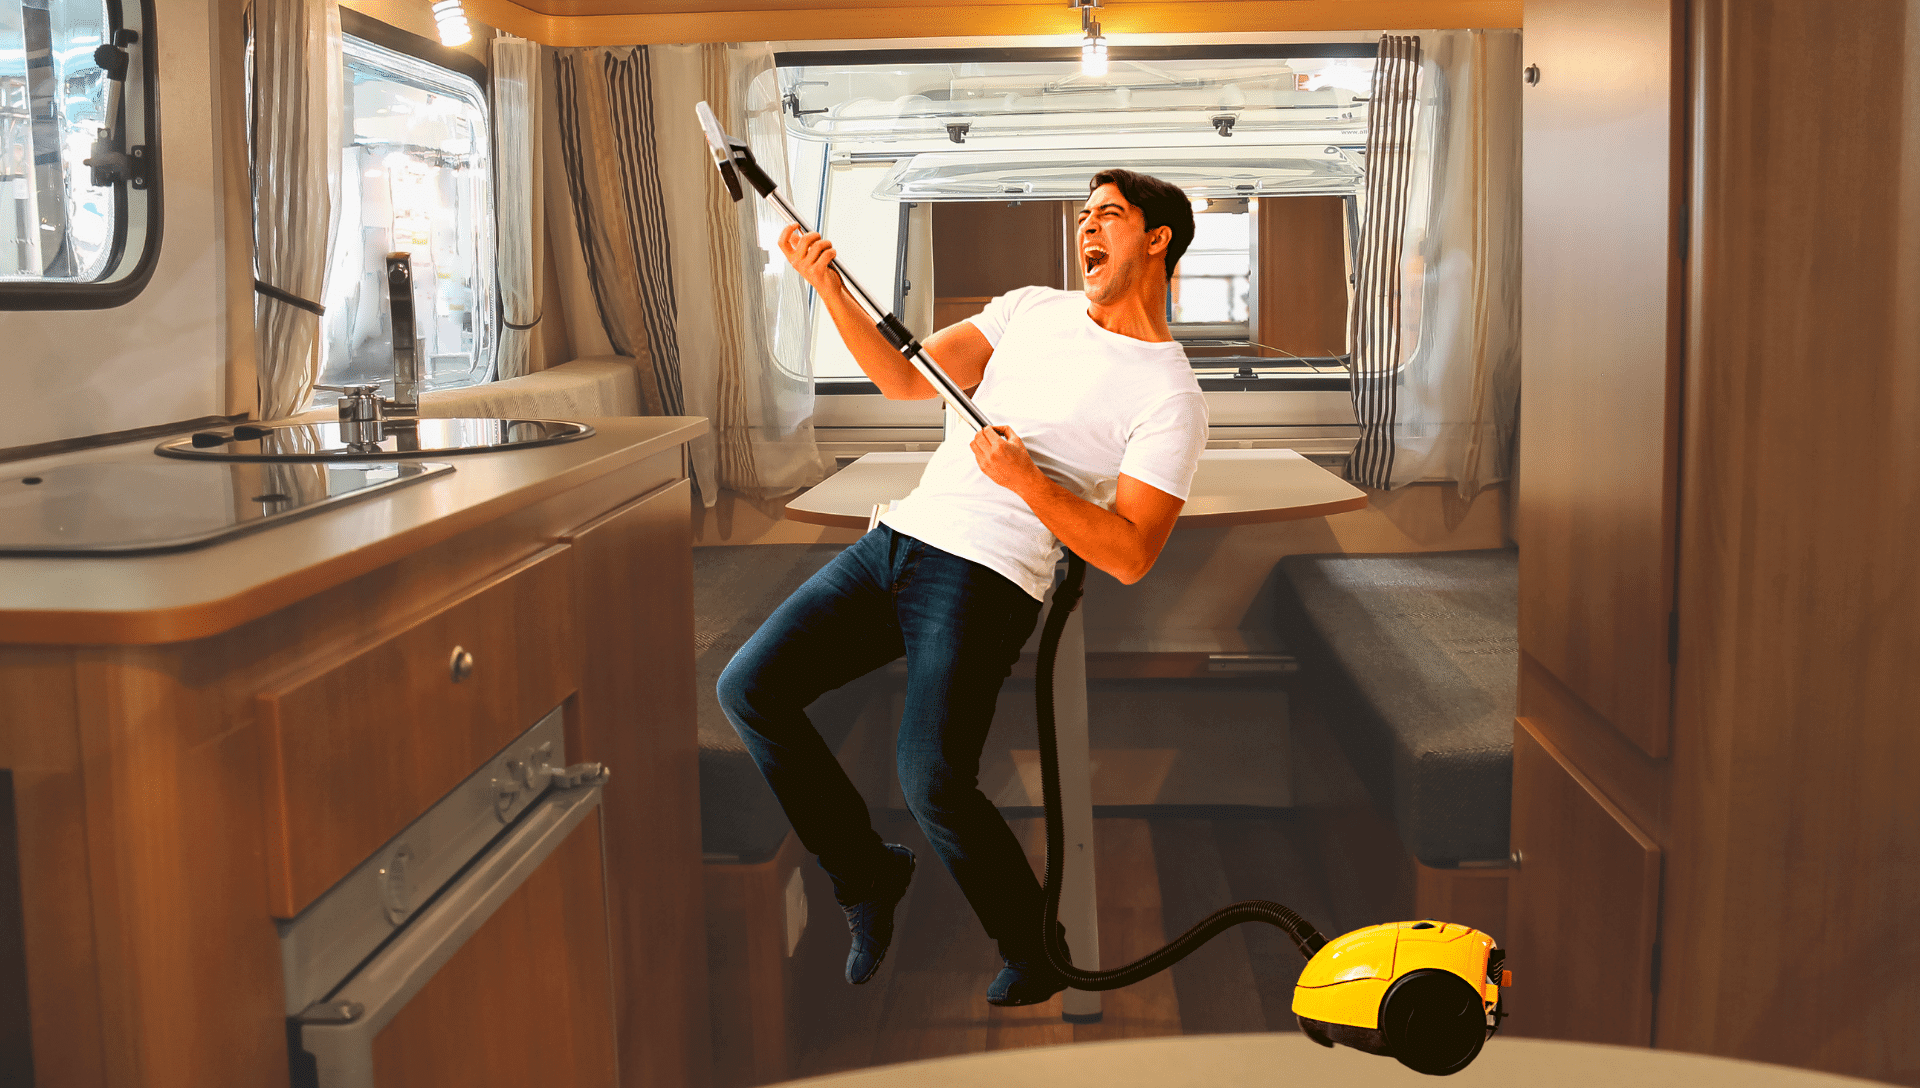 A man is dancing with his vacuum while cleaning the RV interior